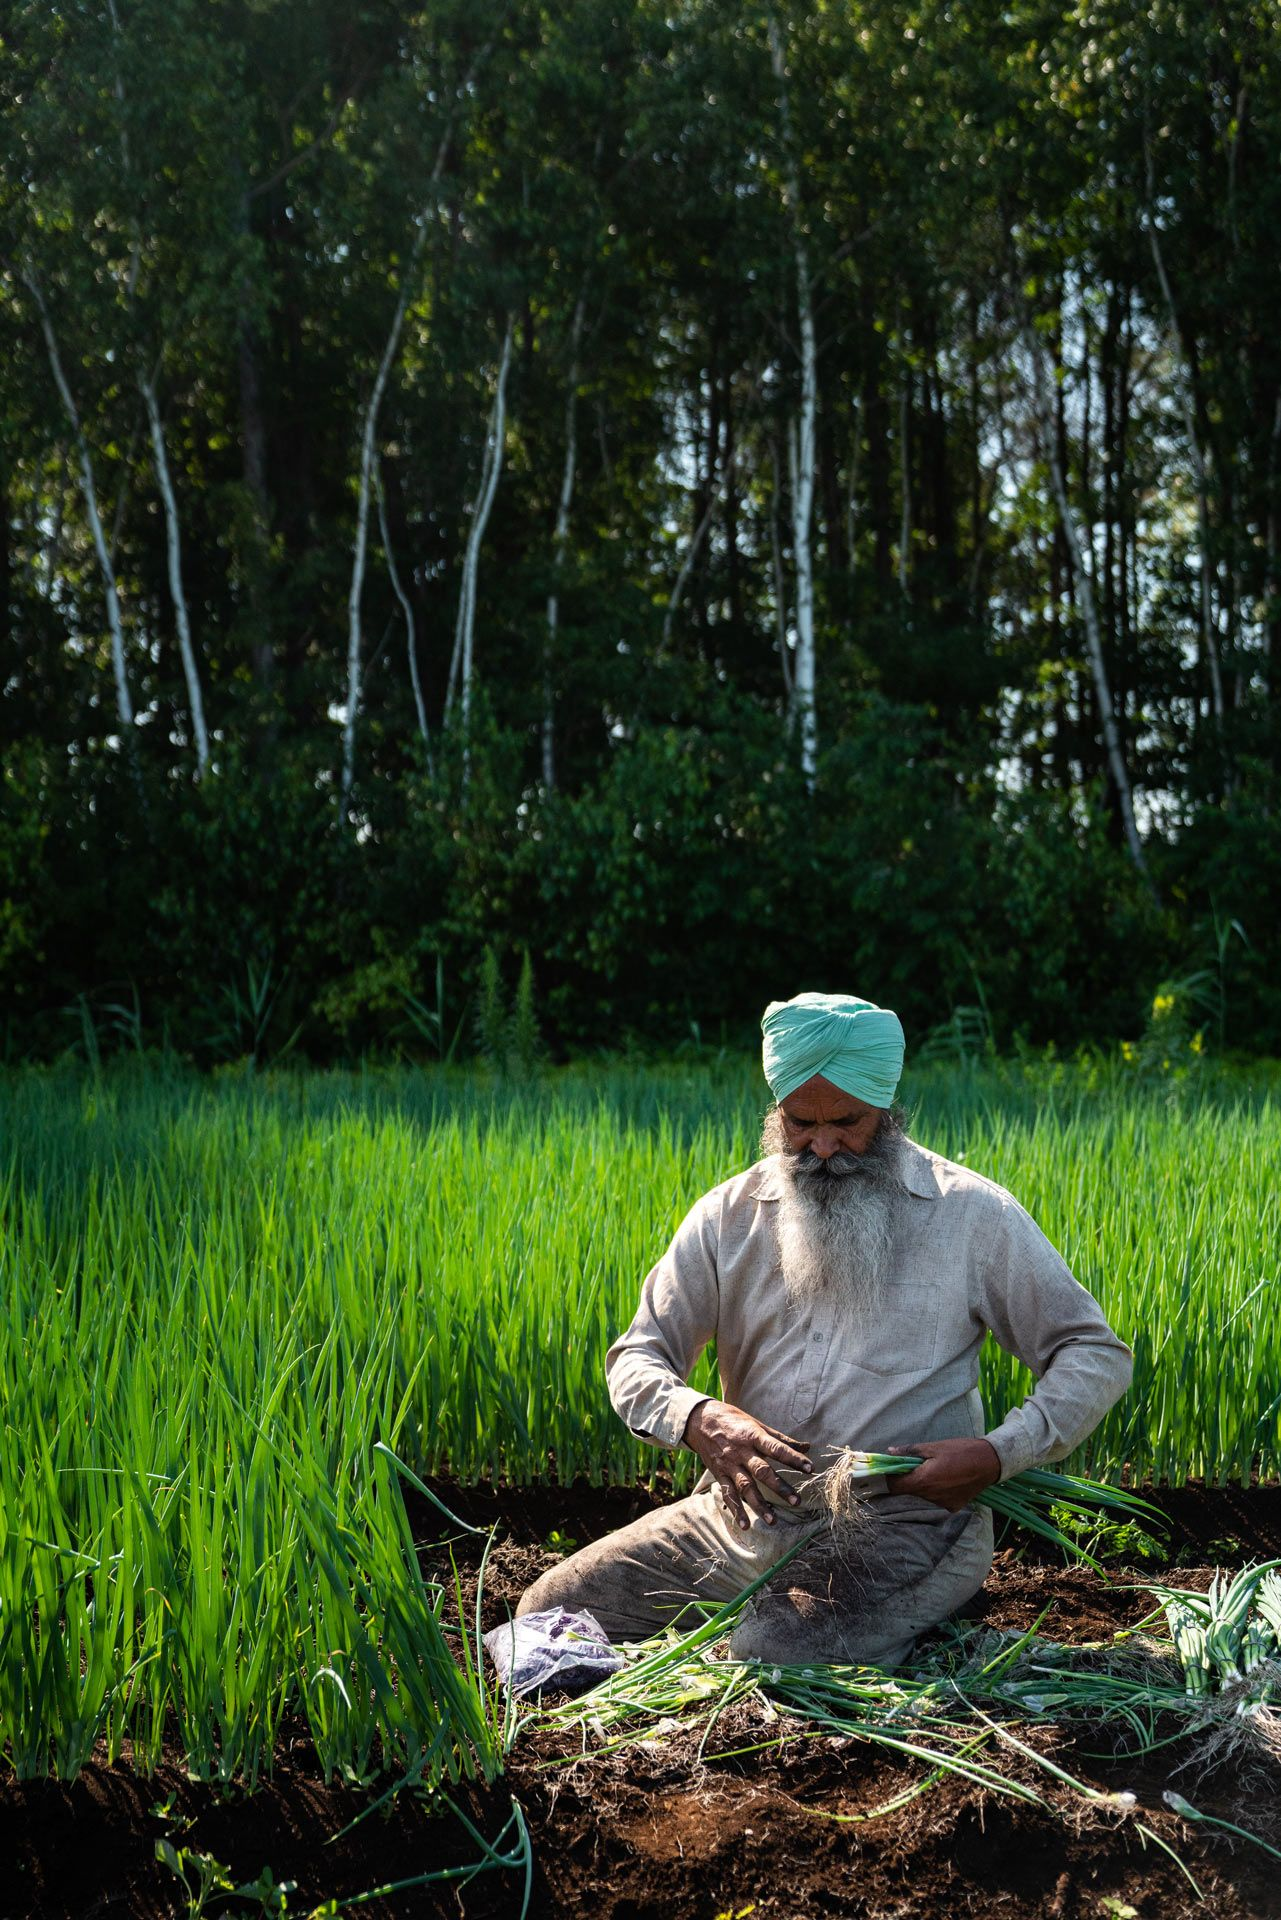 indian farm worker sitting in field harvesting green onions by Bruno Florin for Sollio Agriculture